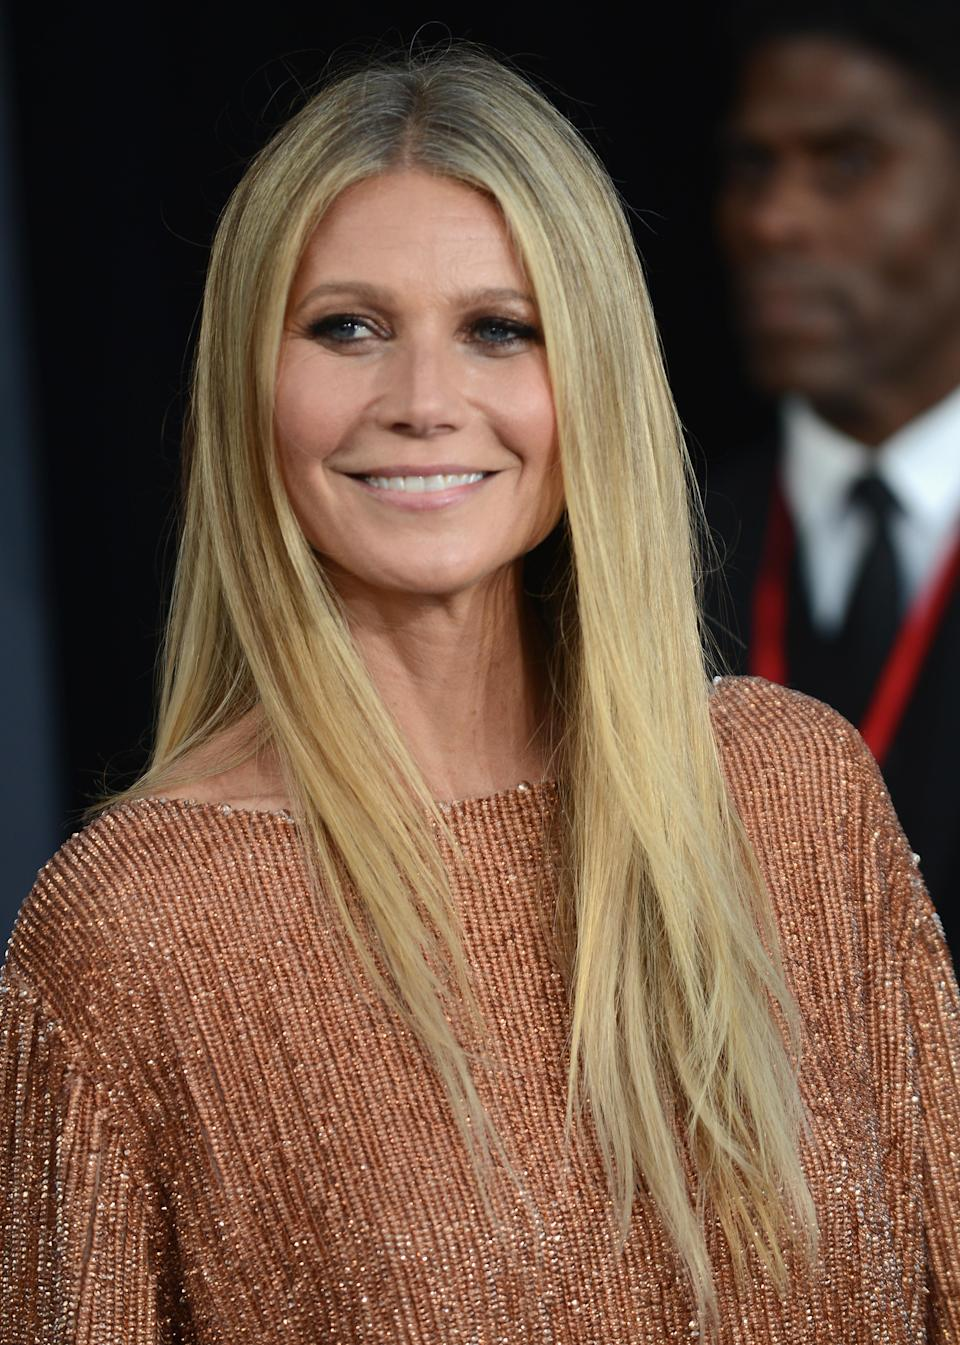 """<p>She may have founded wellbeing company, Goop, but even Gywneth Paltrow isn't afraid to ask for a little help. In an <a rel=""""nofollow noopener"""" href=""""https://www.huffingtonpost.co.uk/2013/04/11/gwyneth-paltrow-botox-crazy_n_3061576.html"""" target=""""_blank"""" data-ylk=""""slk:interview"""" class=""""link rapid-noclick-resp"""">interview</a> with <em>Harper's Bazaar</em>, the former actress admitted she had some botox done. """"I would be scared to go under the knife, but you know, talk to me when I'm 50. I'll try anything. Except I won't do botox again, because I looked crazy."""" <em>[Photo: Getty]</em> </p>"""